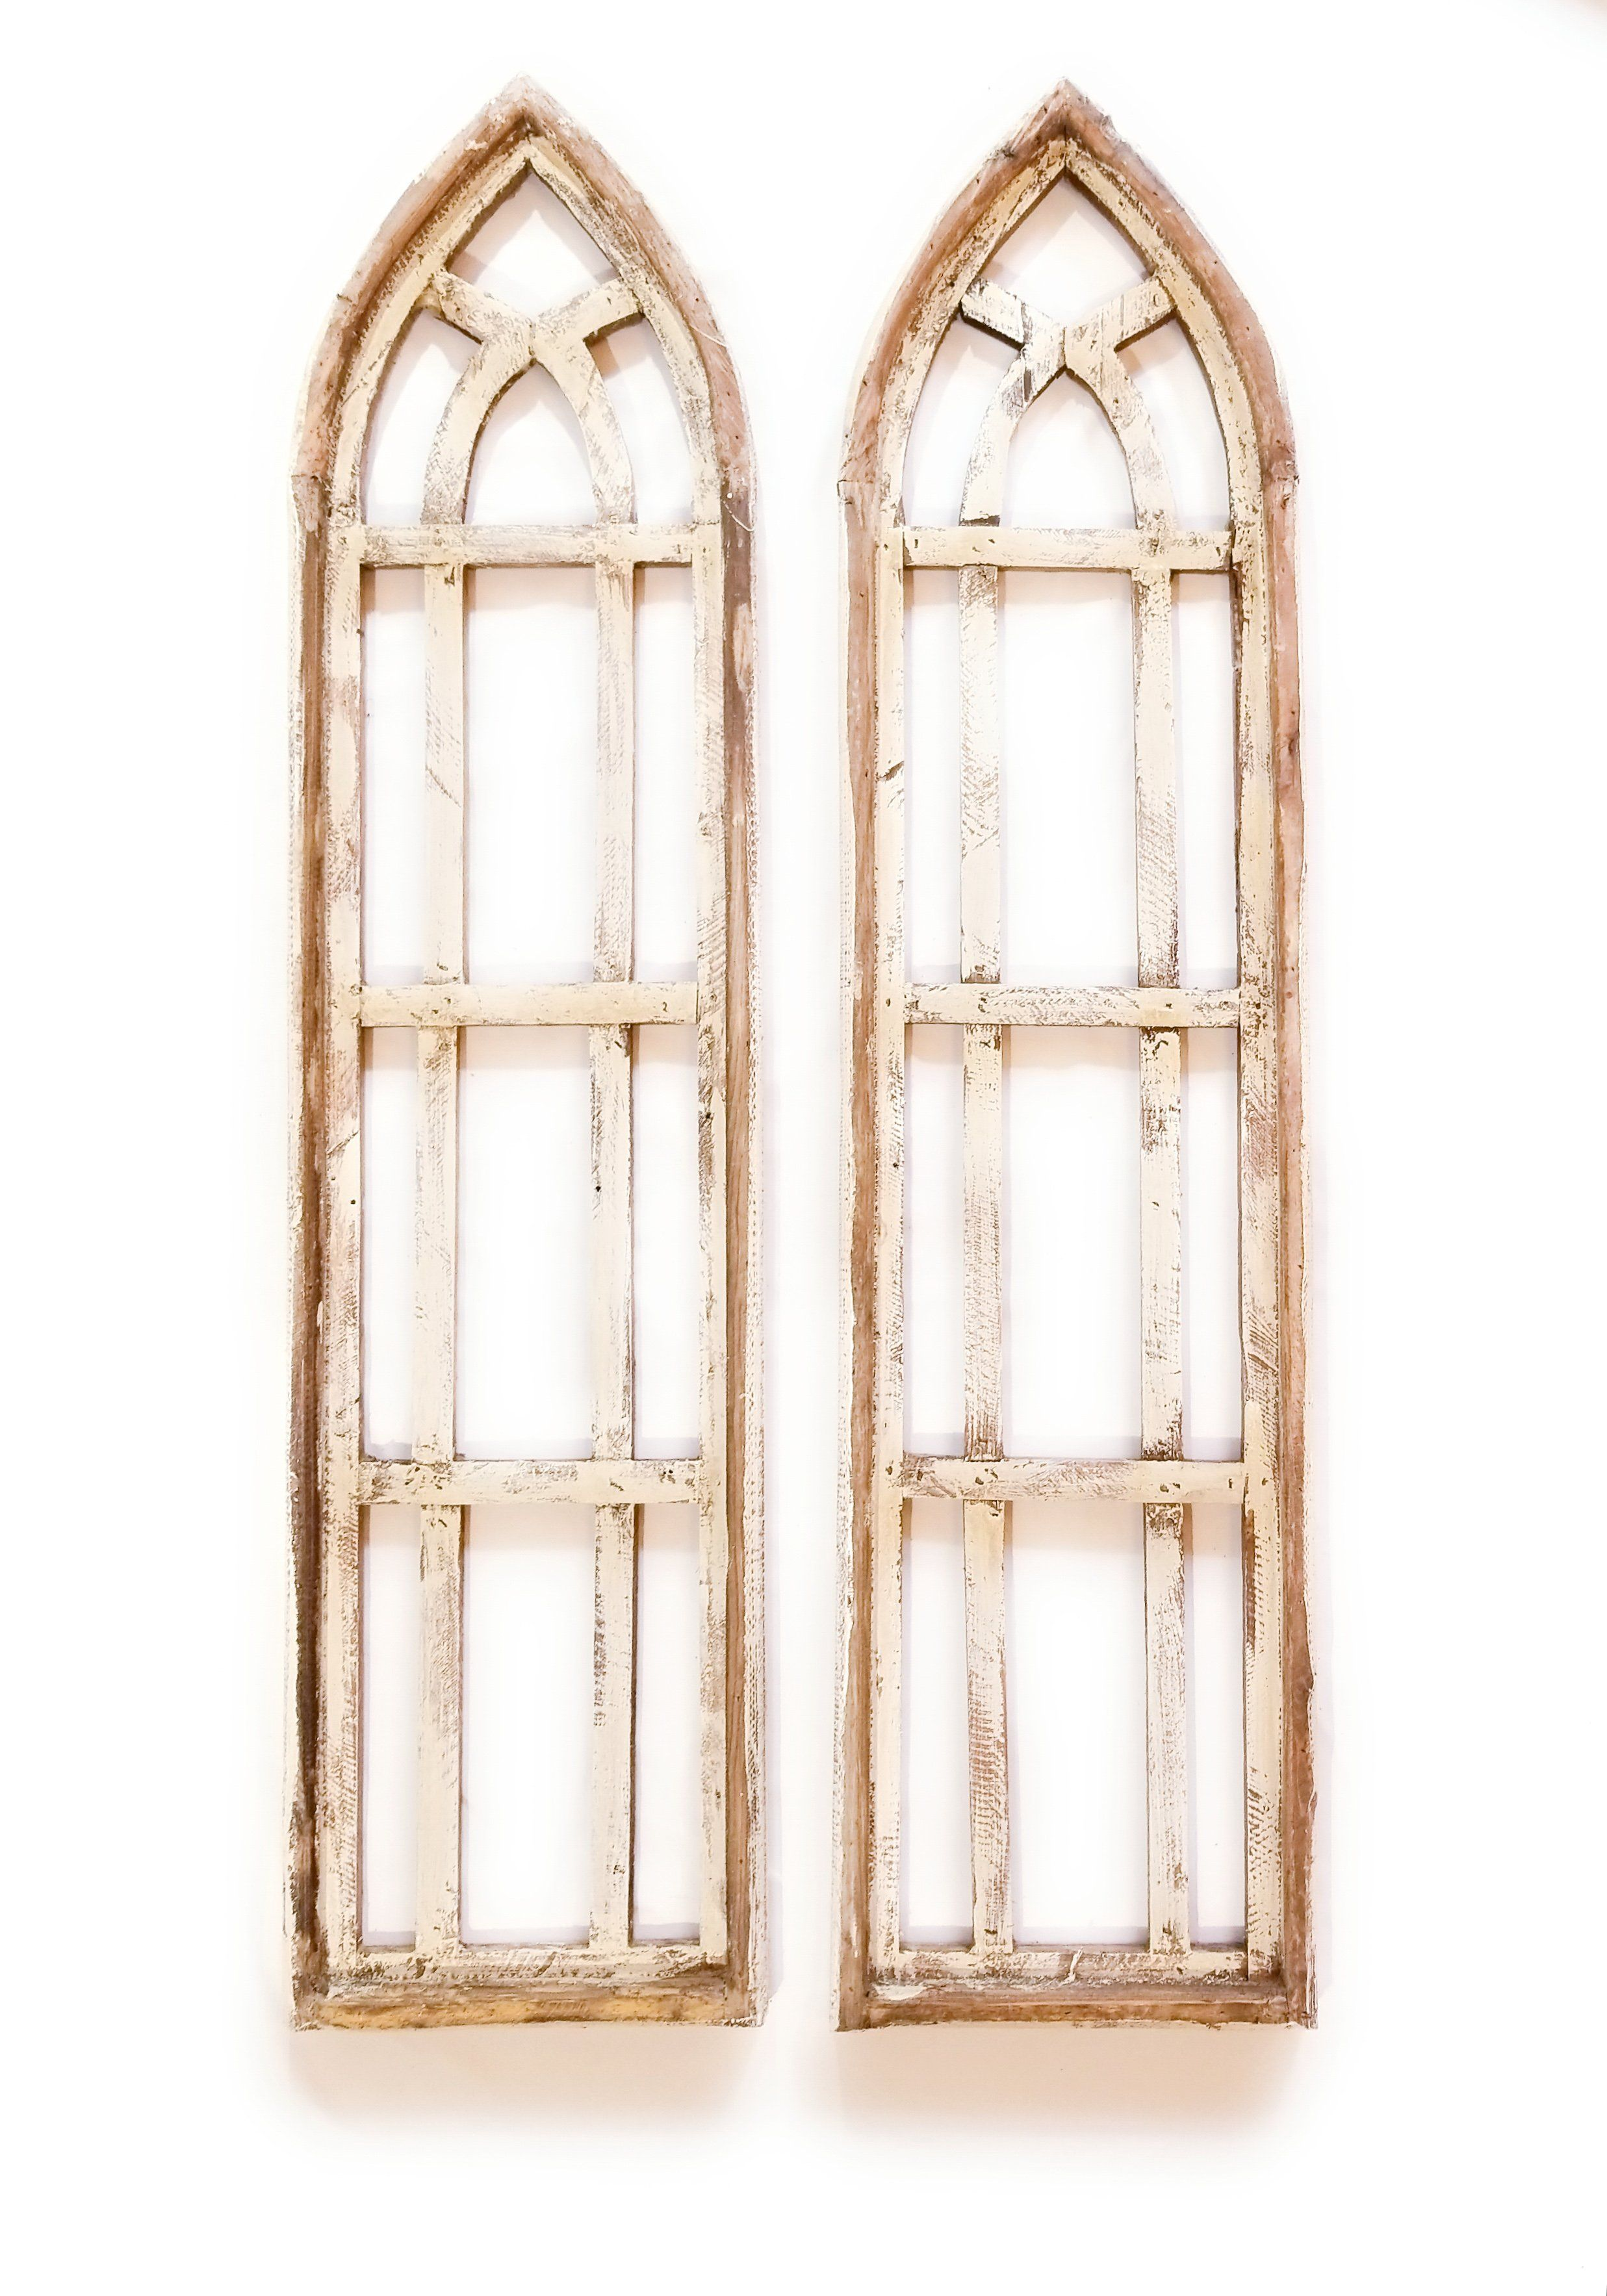 Farmhouse Wooden Wall Window Arches Set Of 2 Three Sizes Rustic